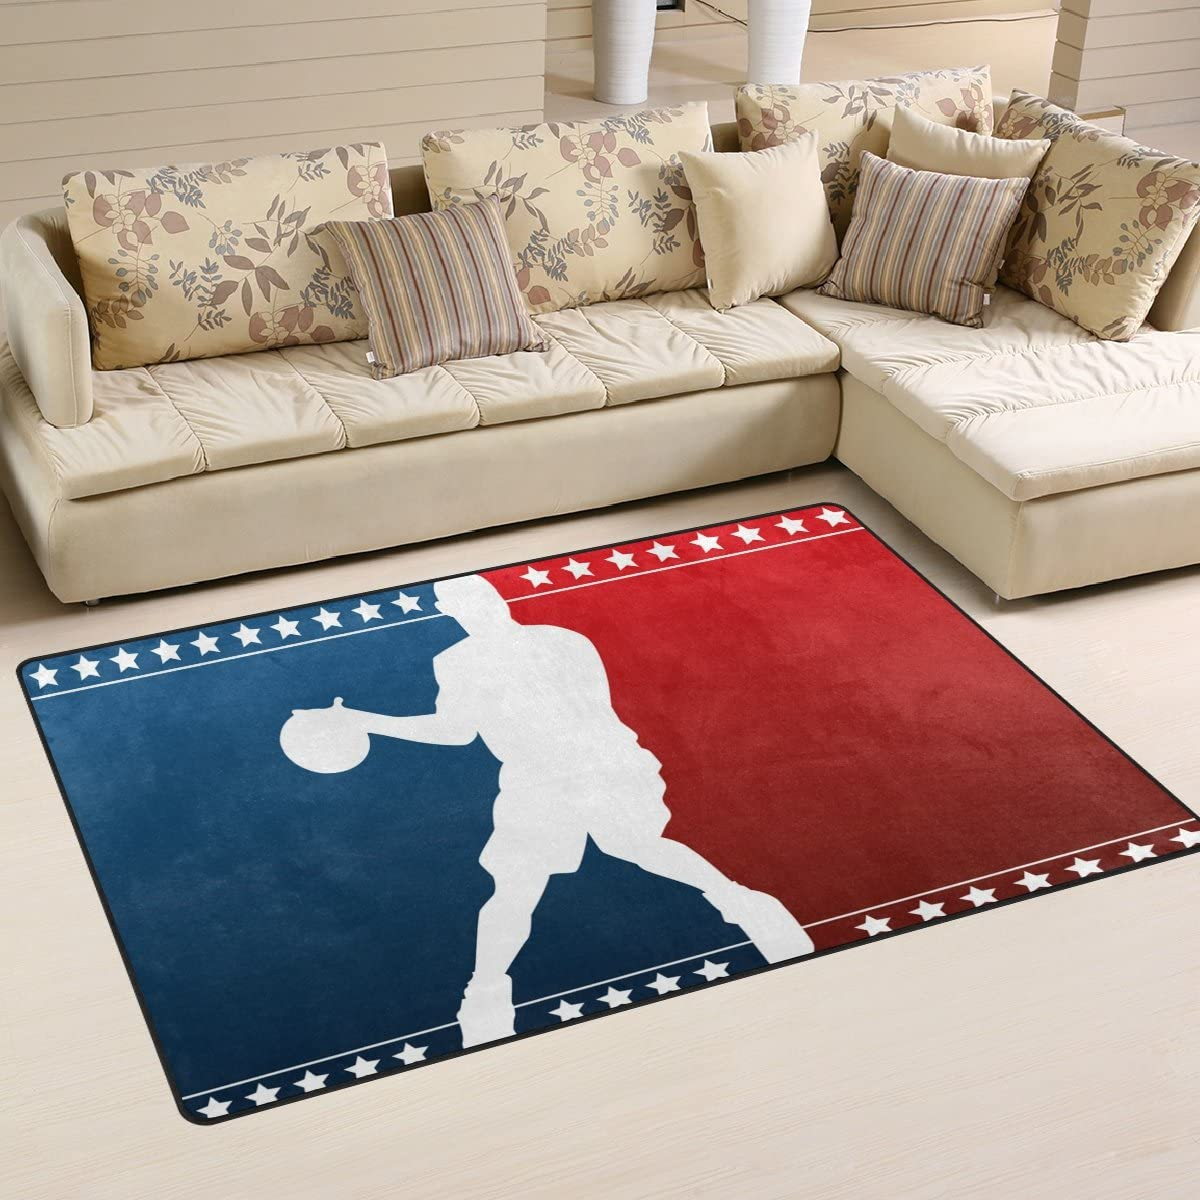 Yochoice Non-slip Area Rugs Home Decor, Vintage Colorful Basketball Player Stars Floor Mat Living Room Bedroom Carpets Doormats 60 x 39 inches